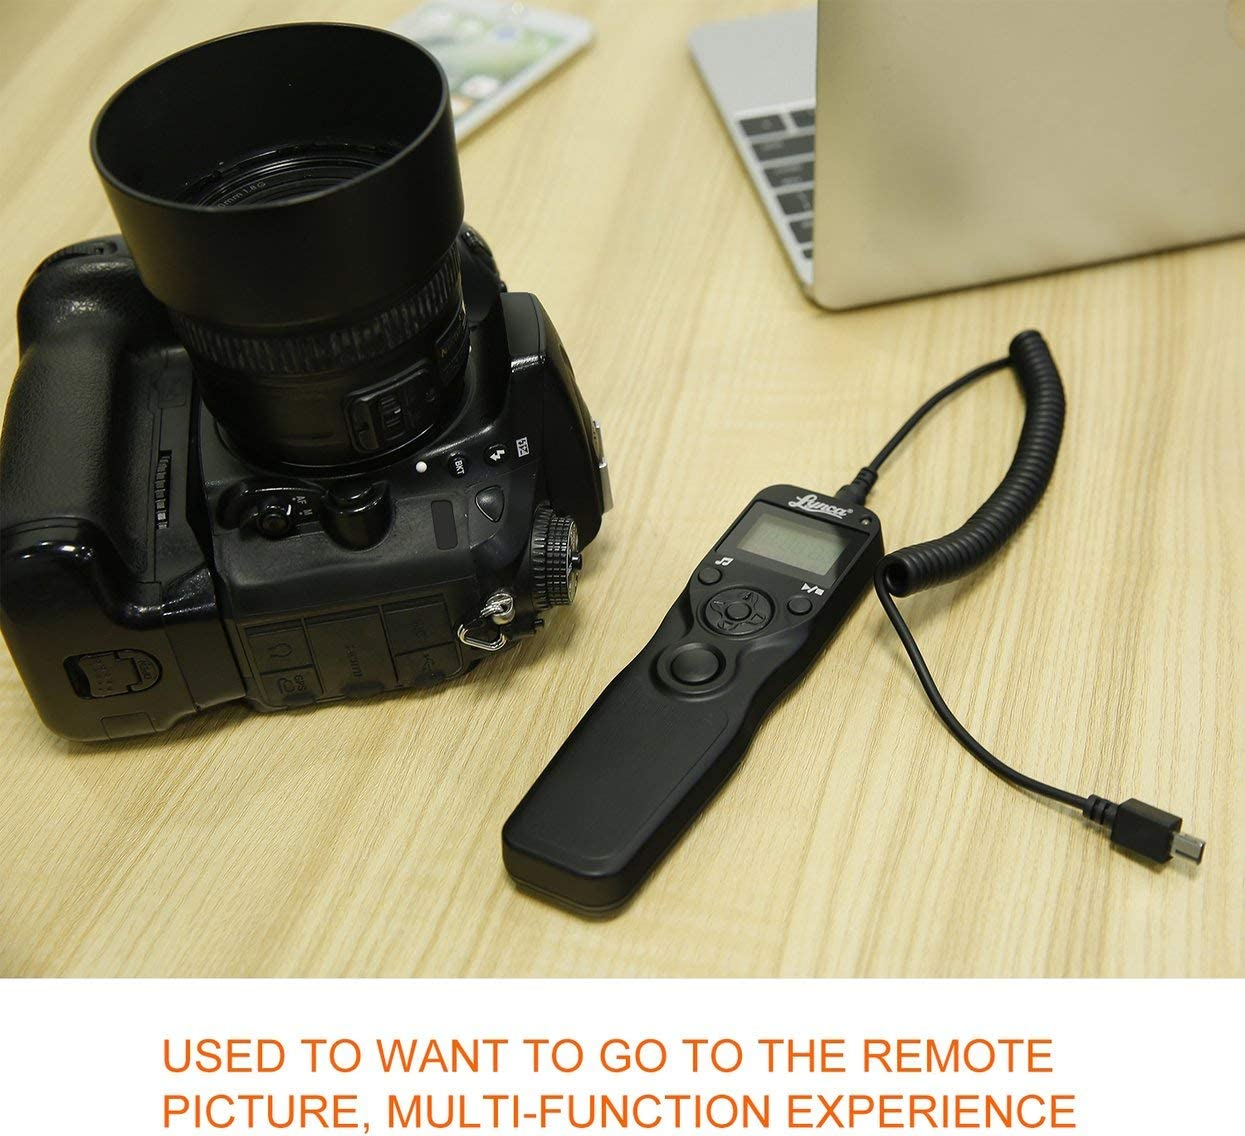 Replacement for MC-DC2 Detectorcatty Digital Timer Remote Control Shutter Release Trigger for Nikon D90 D5000 D5200 D7100 D4 Camera